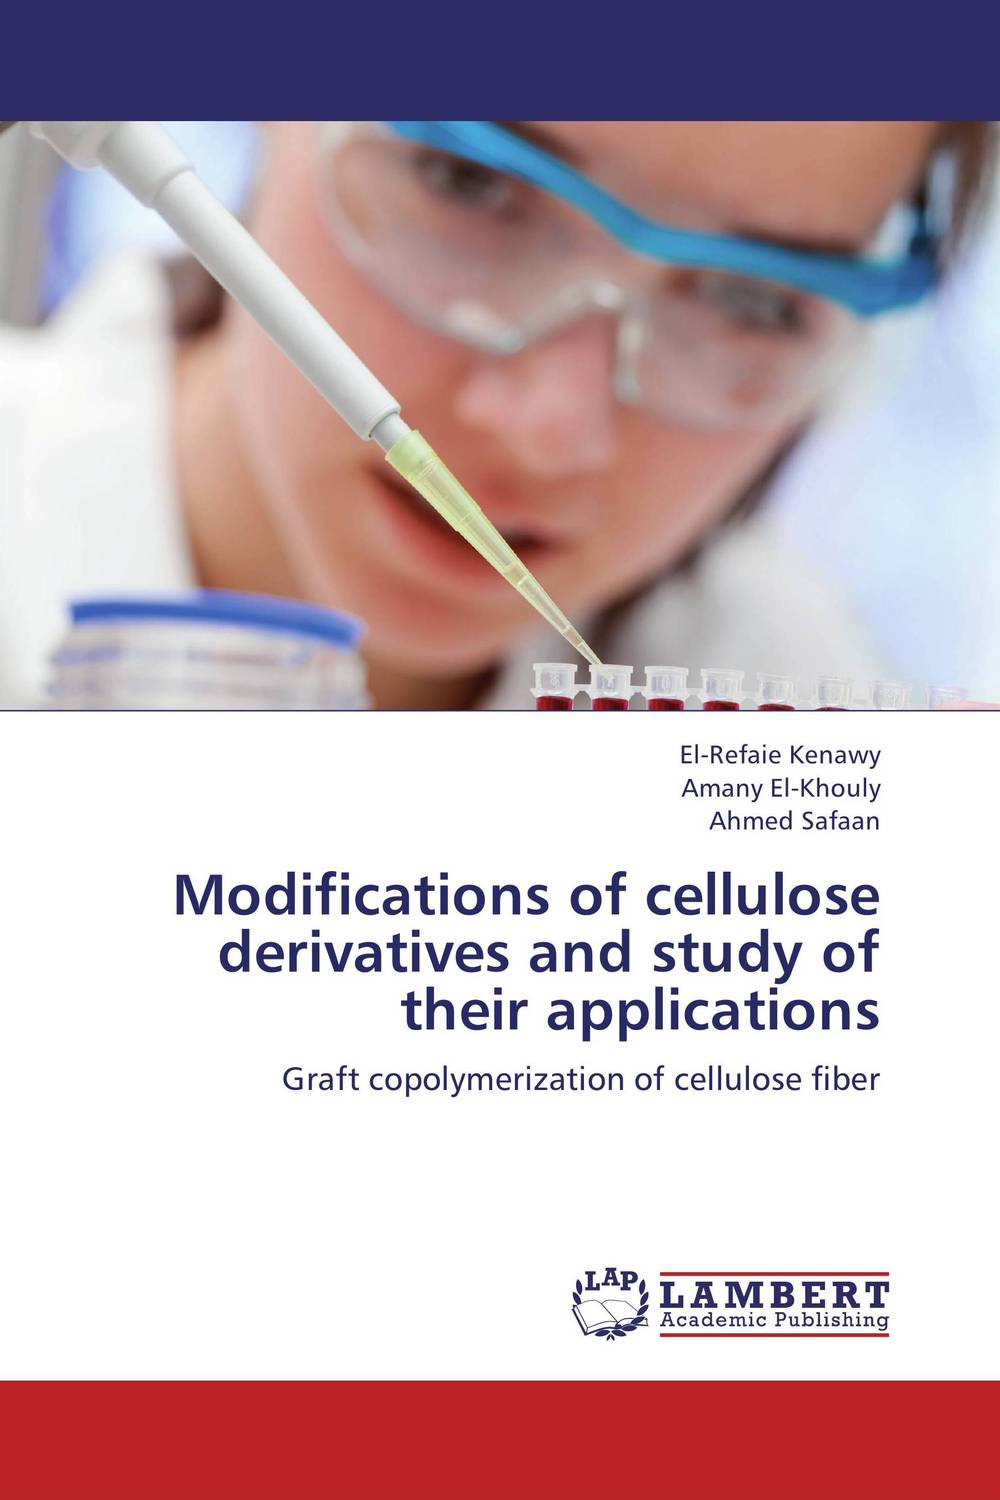 Modifications of cellulose derivatives and study of their applications abm sharif hossain and fusao mizutani dwarfing peach trees grafted on vigorous rootstocks